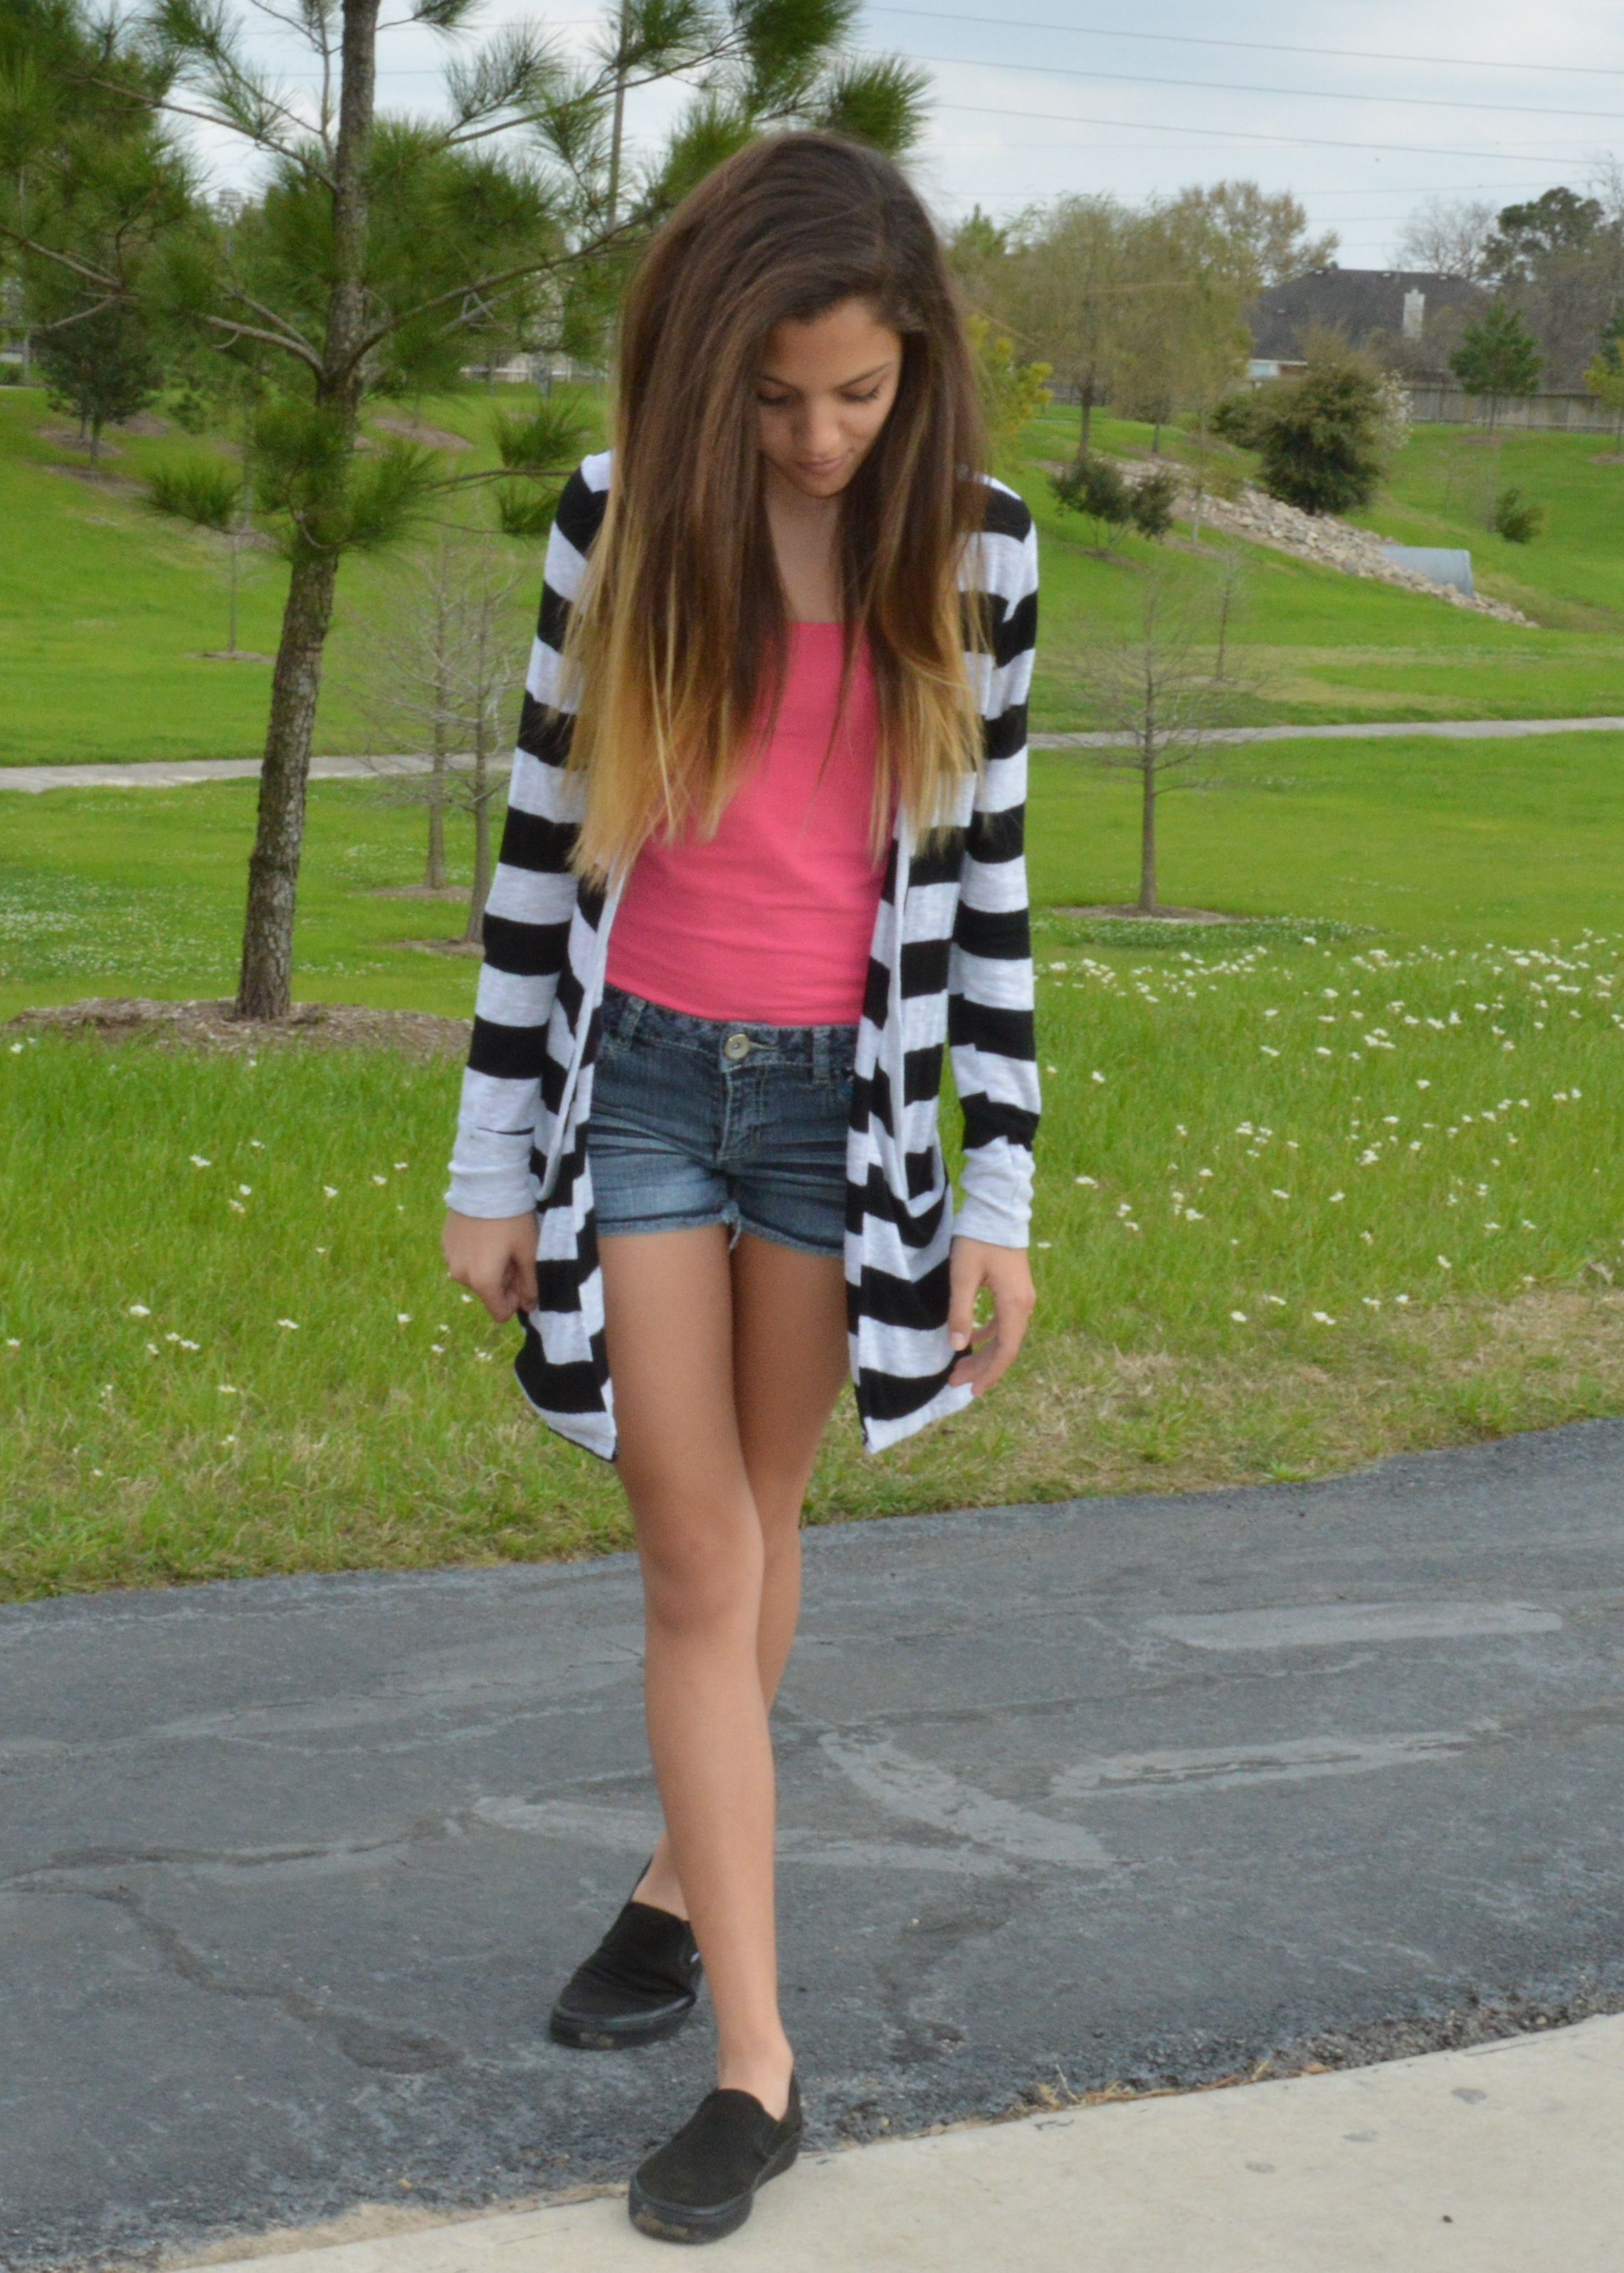 Teen style tuesday horizontal stripes a fashion fiend - Teenager style ...